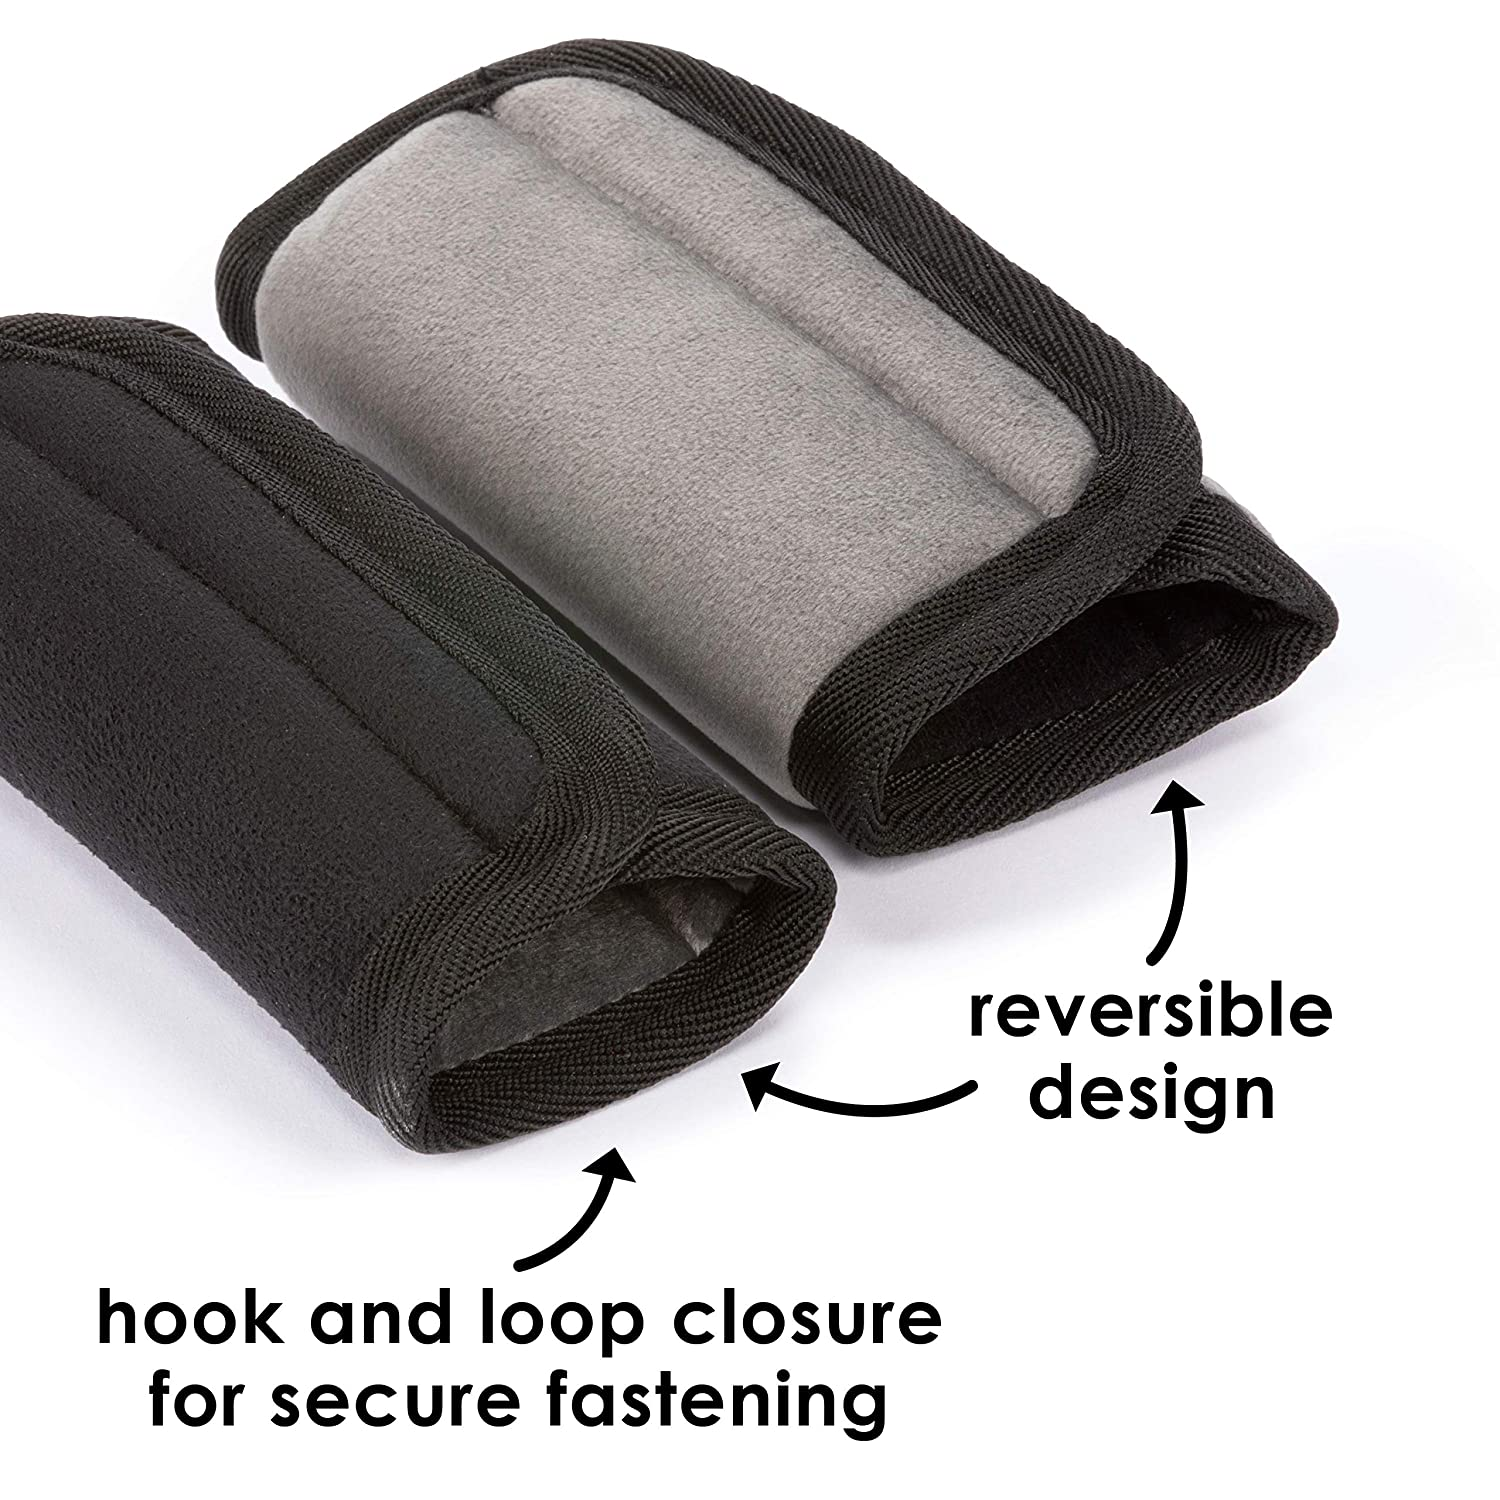 Soft Plush Seatbelt Shoulder Pad for Child Baby Comfort Car Seat and Stroller 2-Pack for Vehicle Black Diono Harness Strap Cover Soft Wraps Prevents Strap Rubbing and Irritation